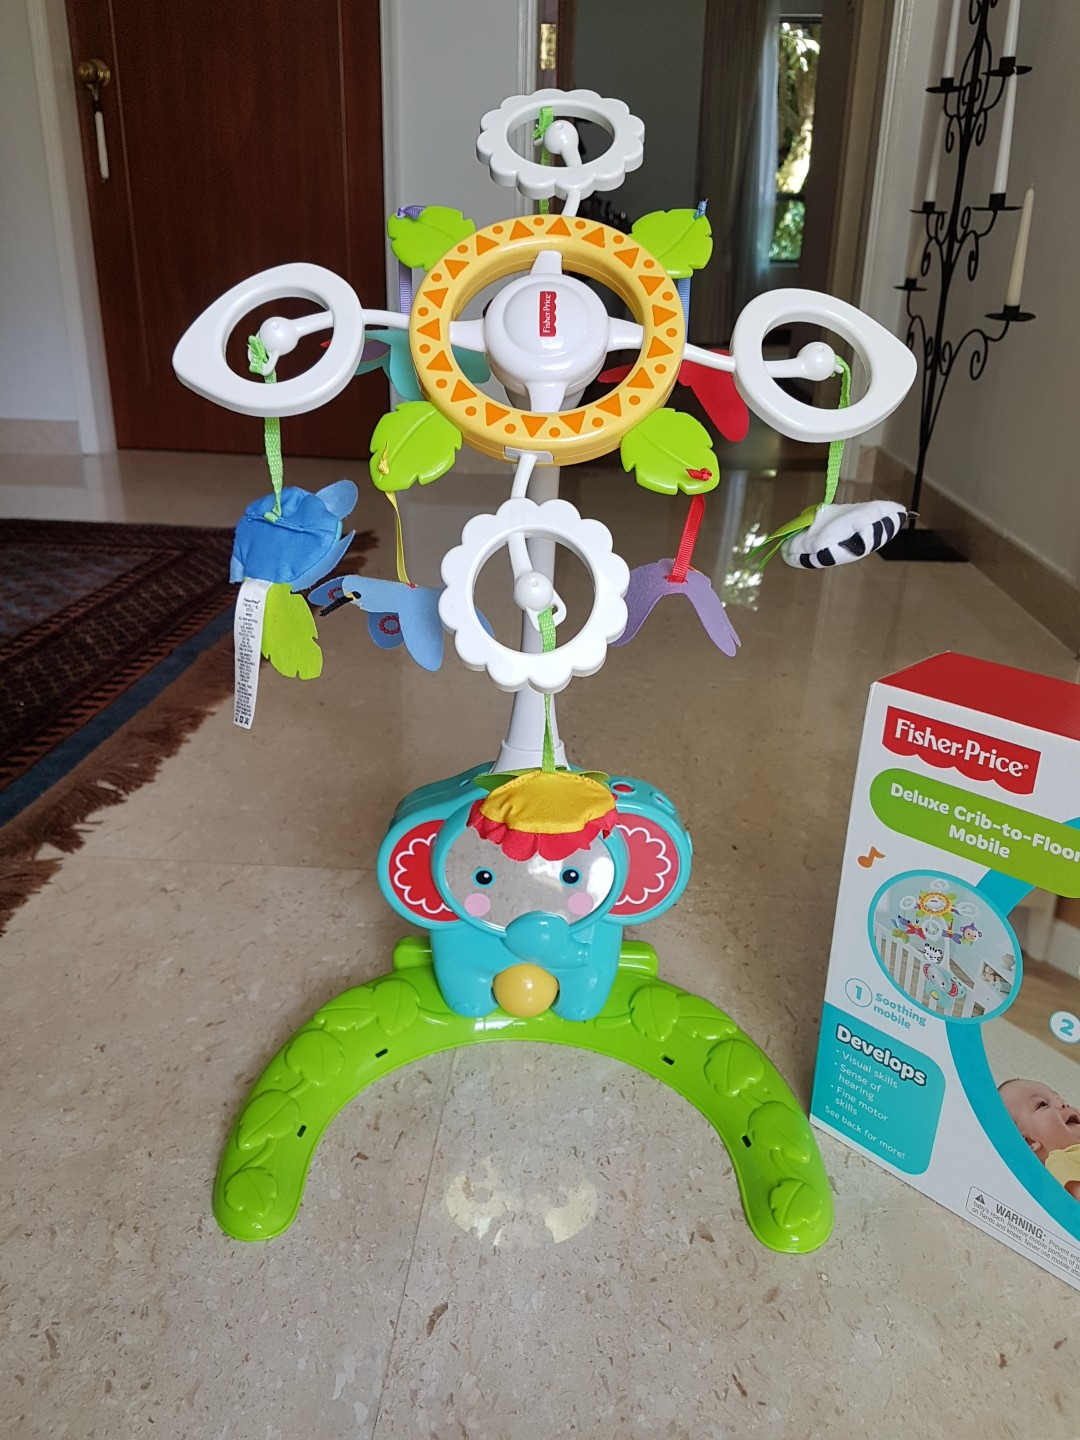 Fisher Price Fisher Price Deluxe Crib To Floor Mobile Babies